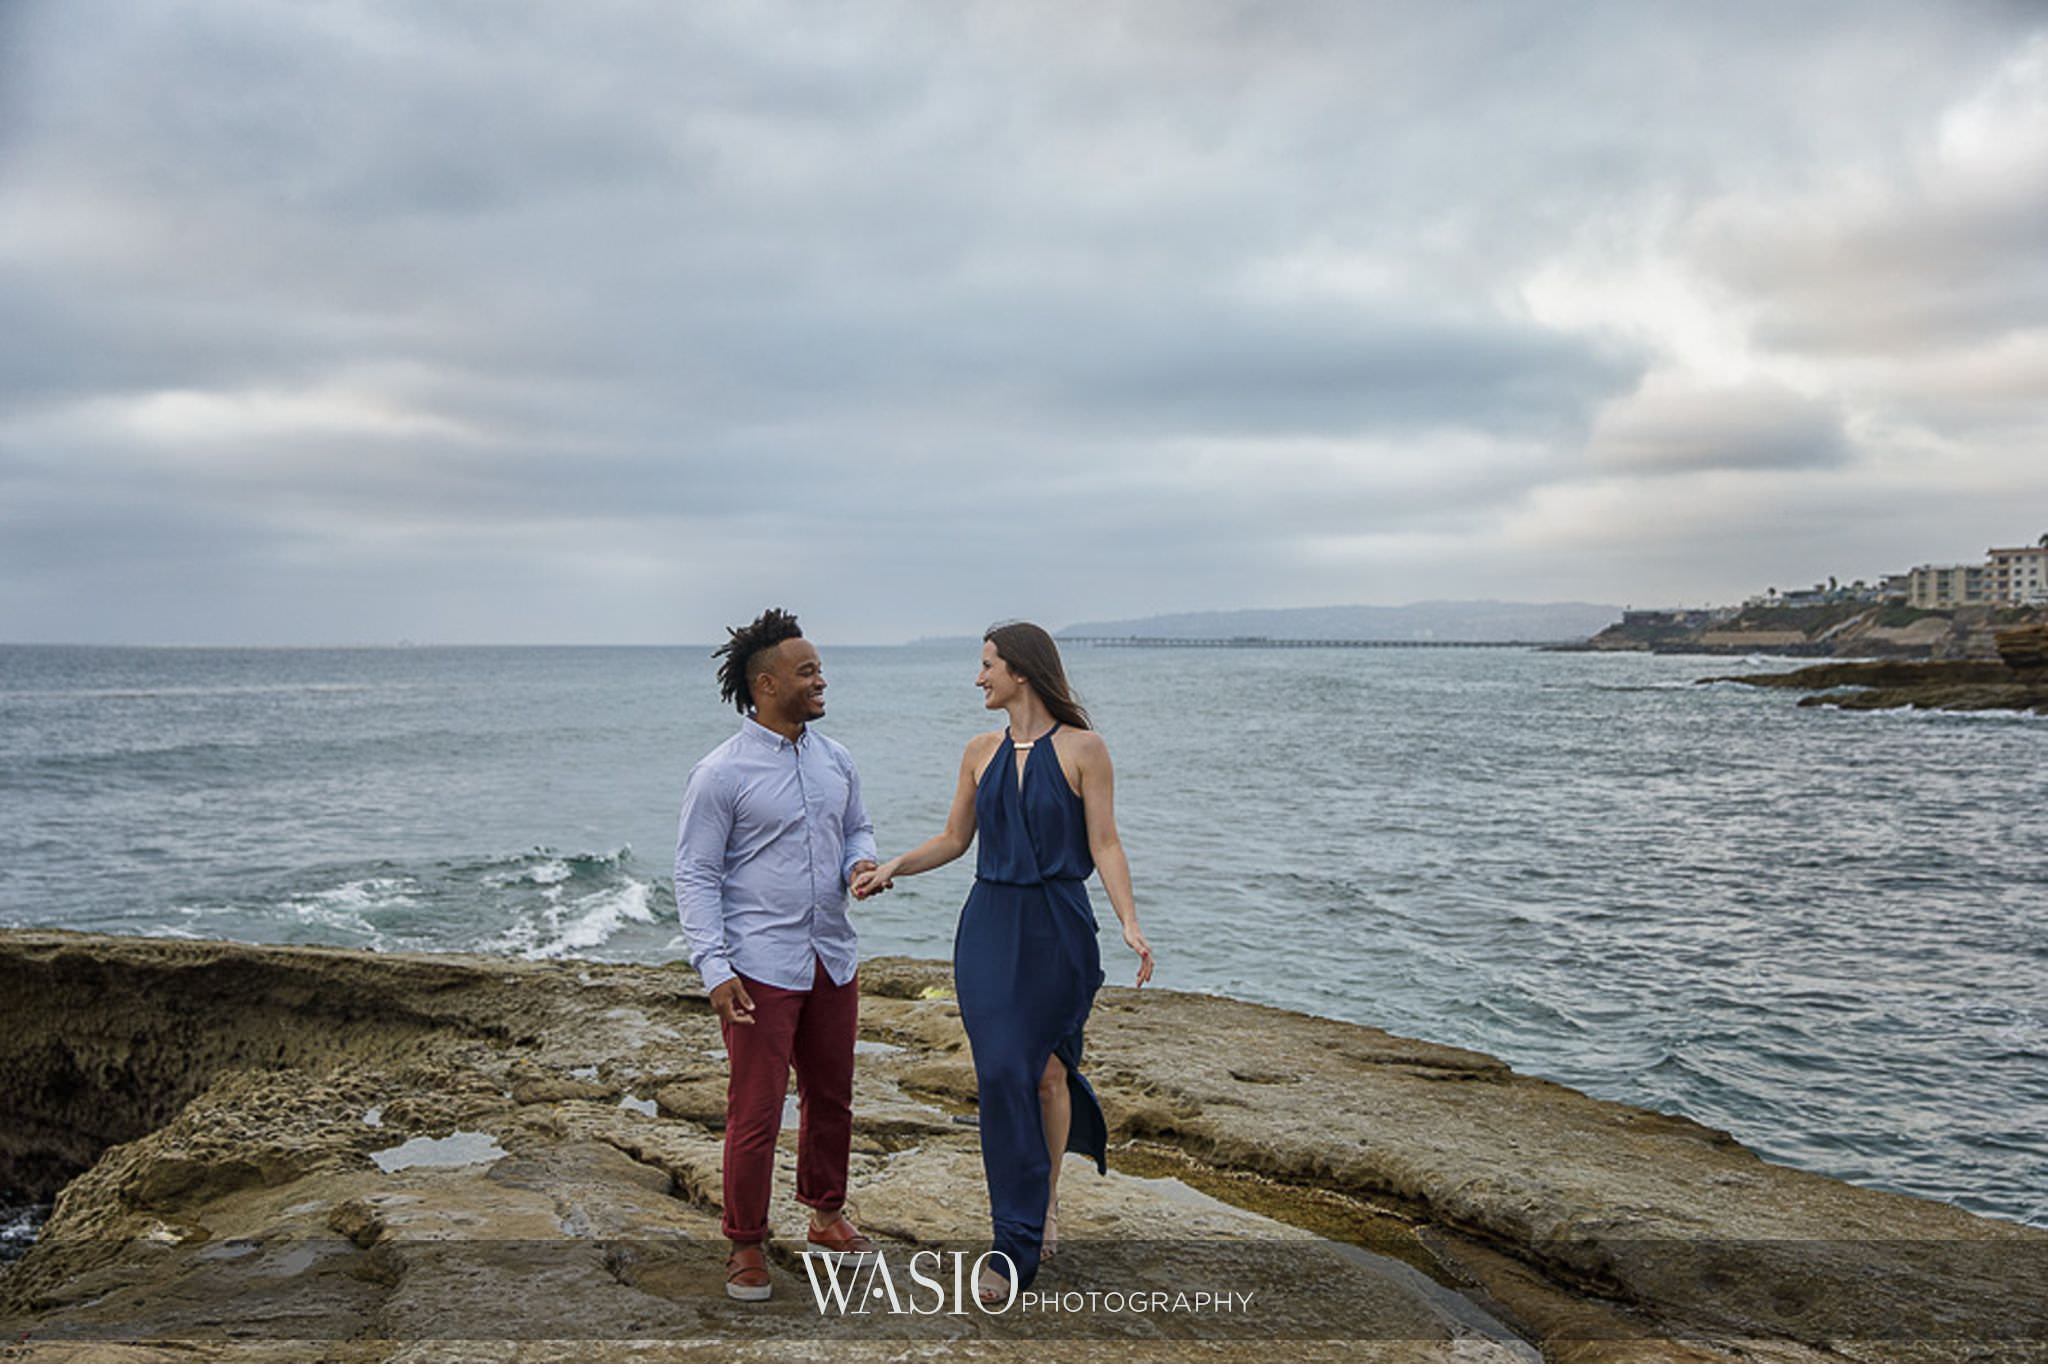 Sunset-Cliffs-San-Diego-Engagement-romantic-hand-holding-ocean-love-fun-outdoor-photo-67 Sunset Cliffs San Diego Engagement - Laura and La Broi